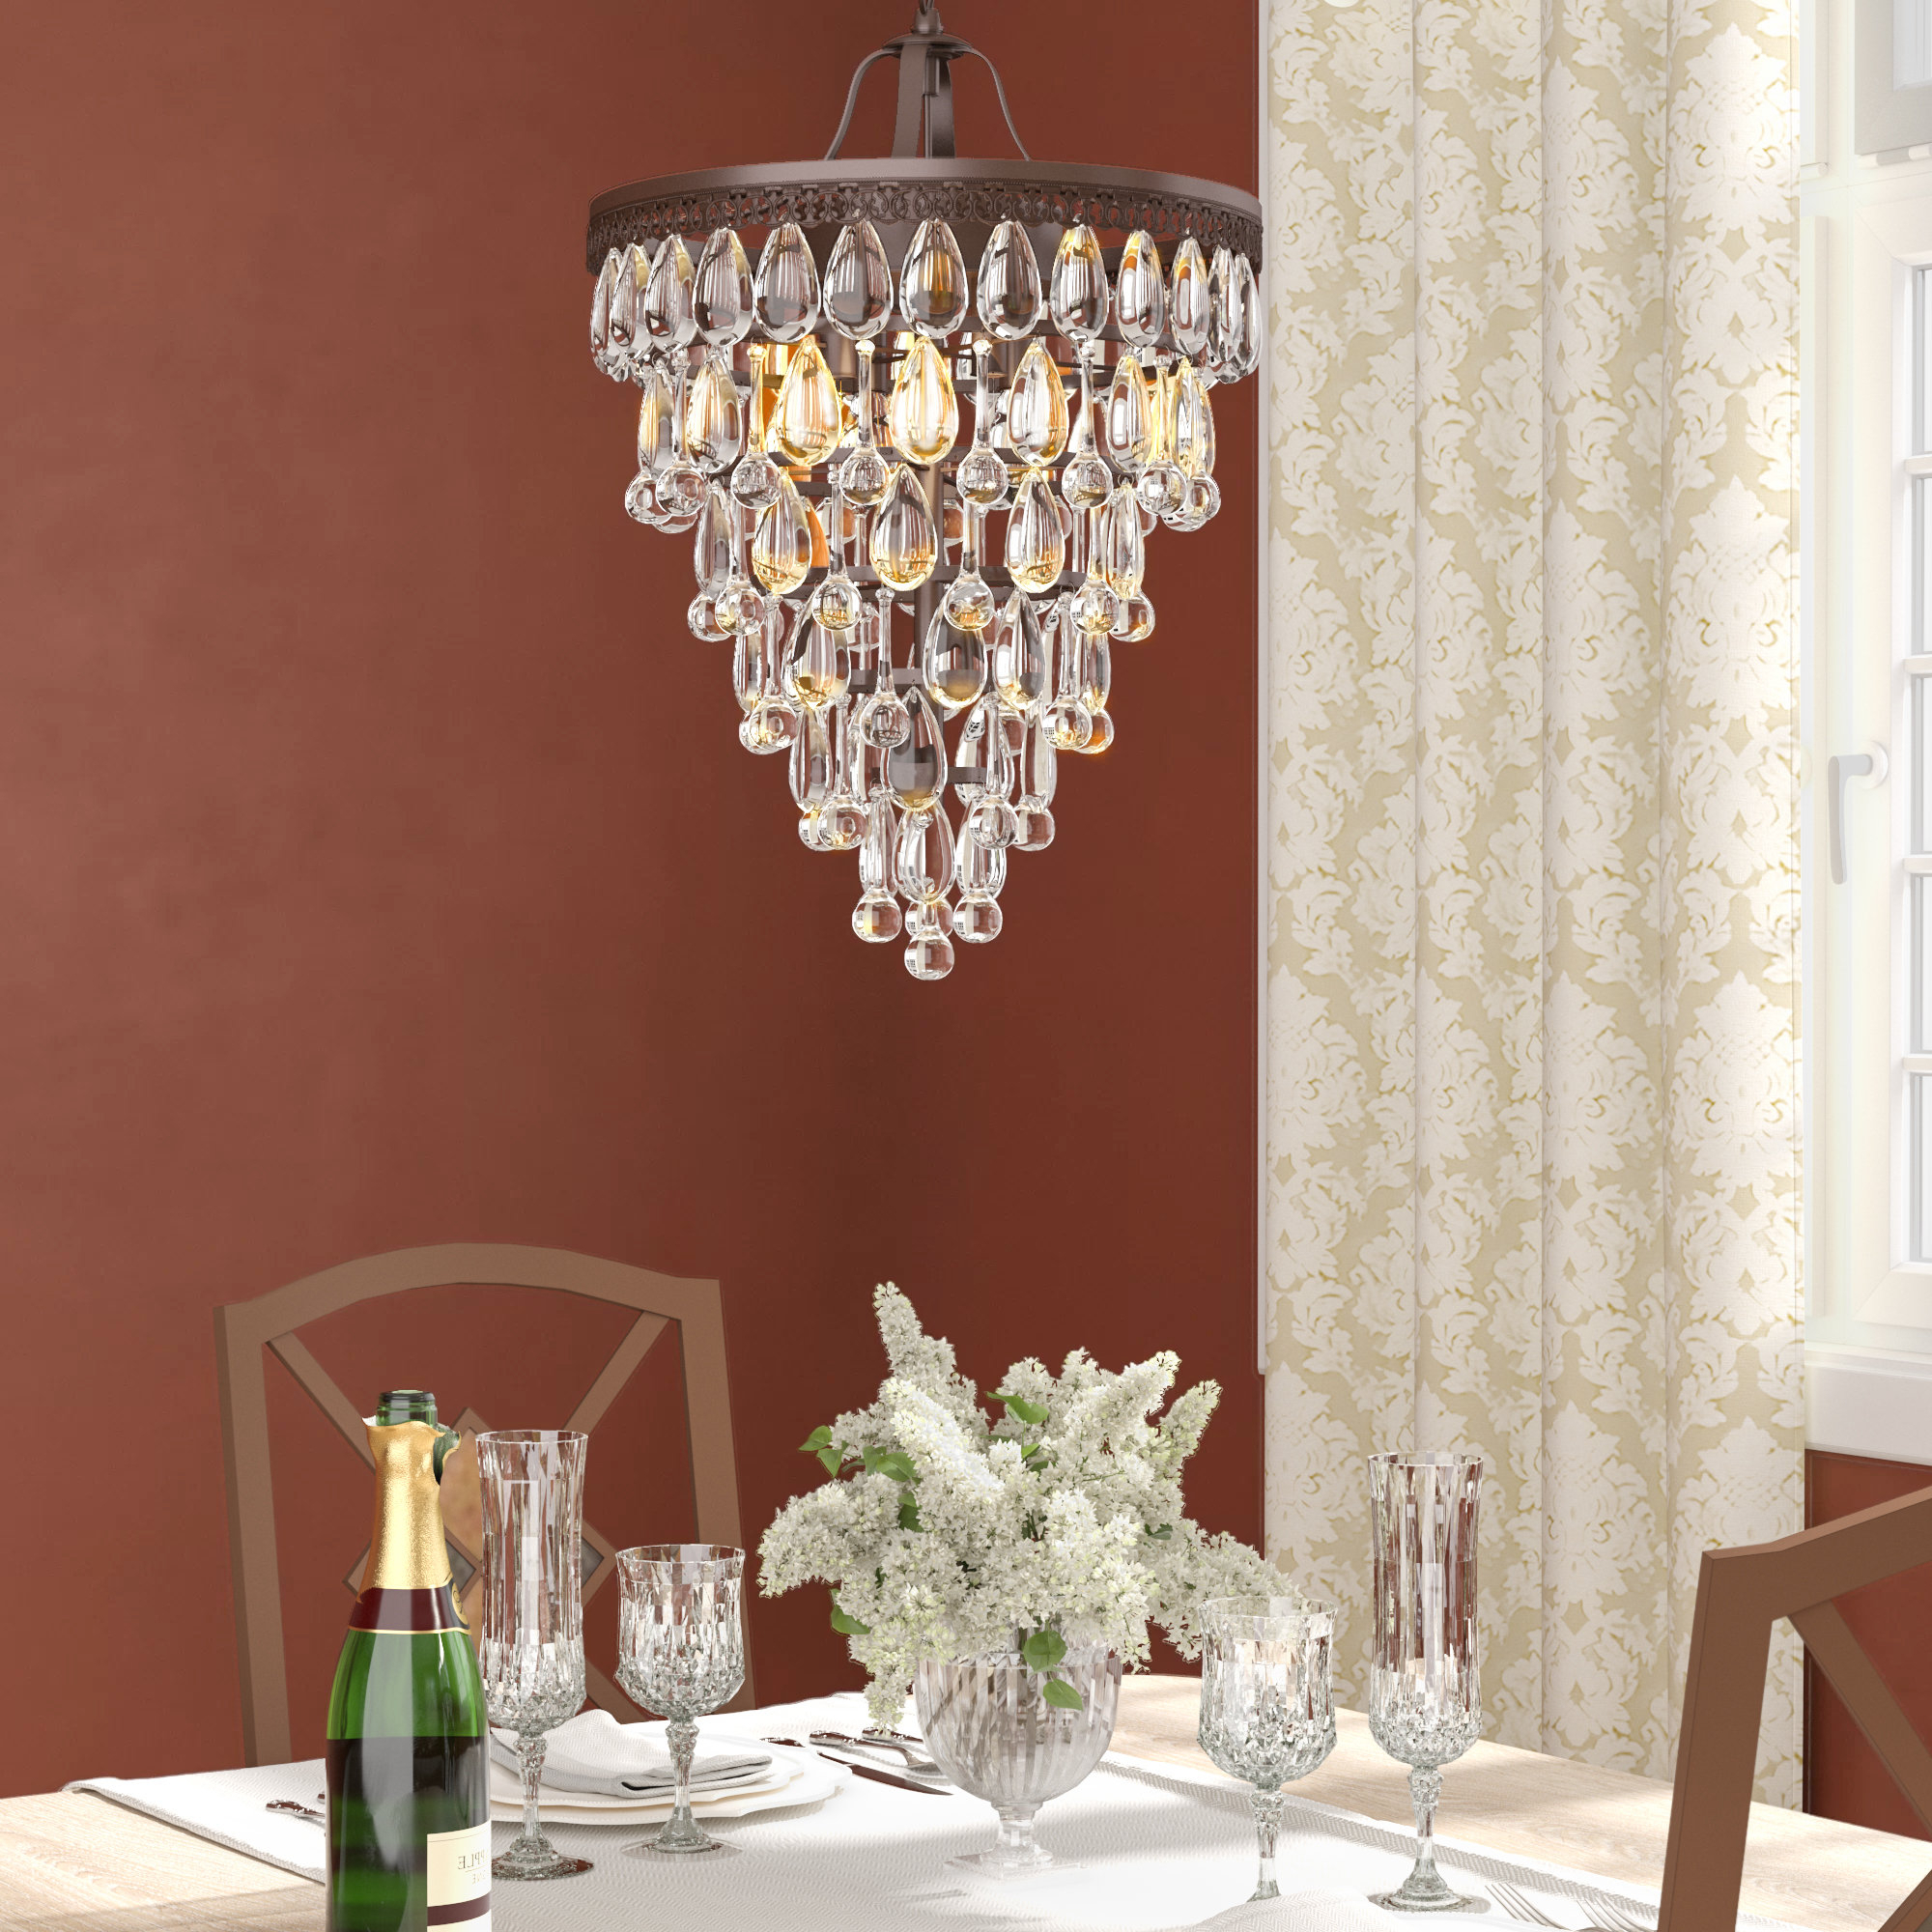 Trujillo 4 Light Crystal Chandelier For Widely Used Aurore 4 Light Crystal Chandeliers (View 19 of 20)